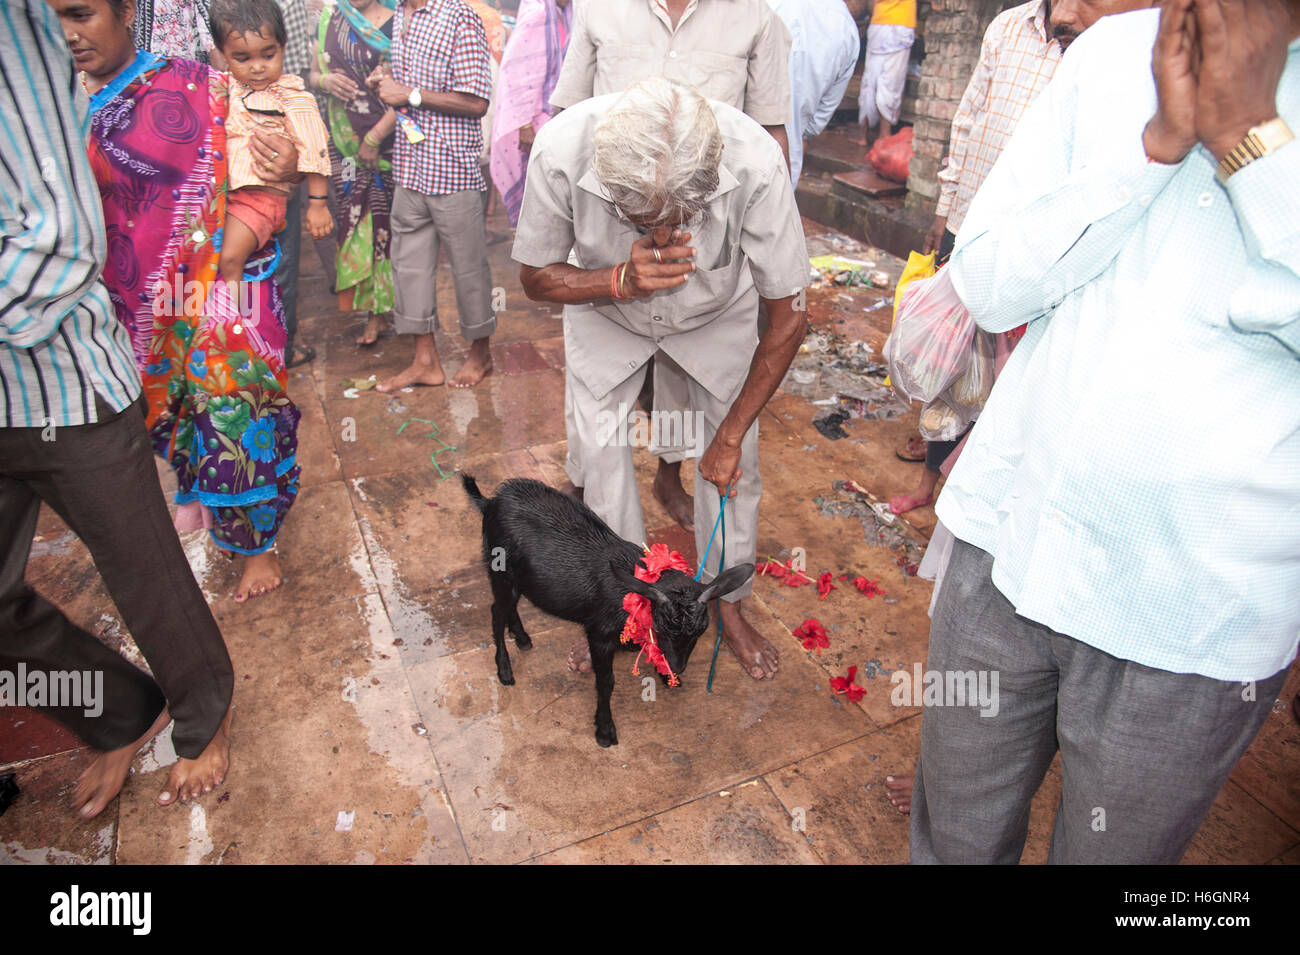 Hindu man worship a Goat  for  sacrifice to goddess as wishes fulfilled by goddess kali ghat Kolkata West  Bengal - Stock Image